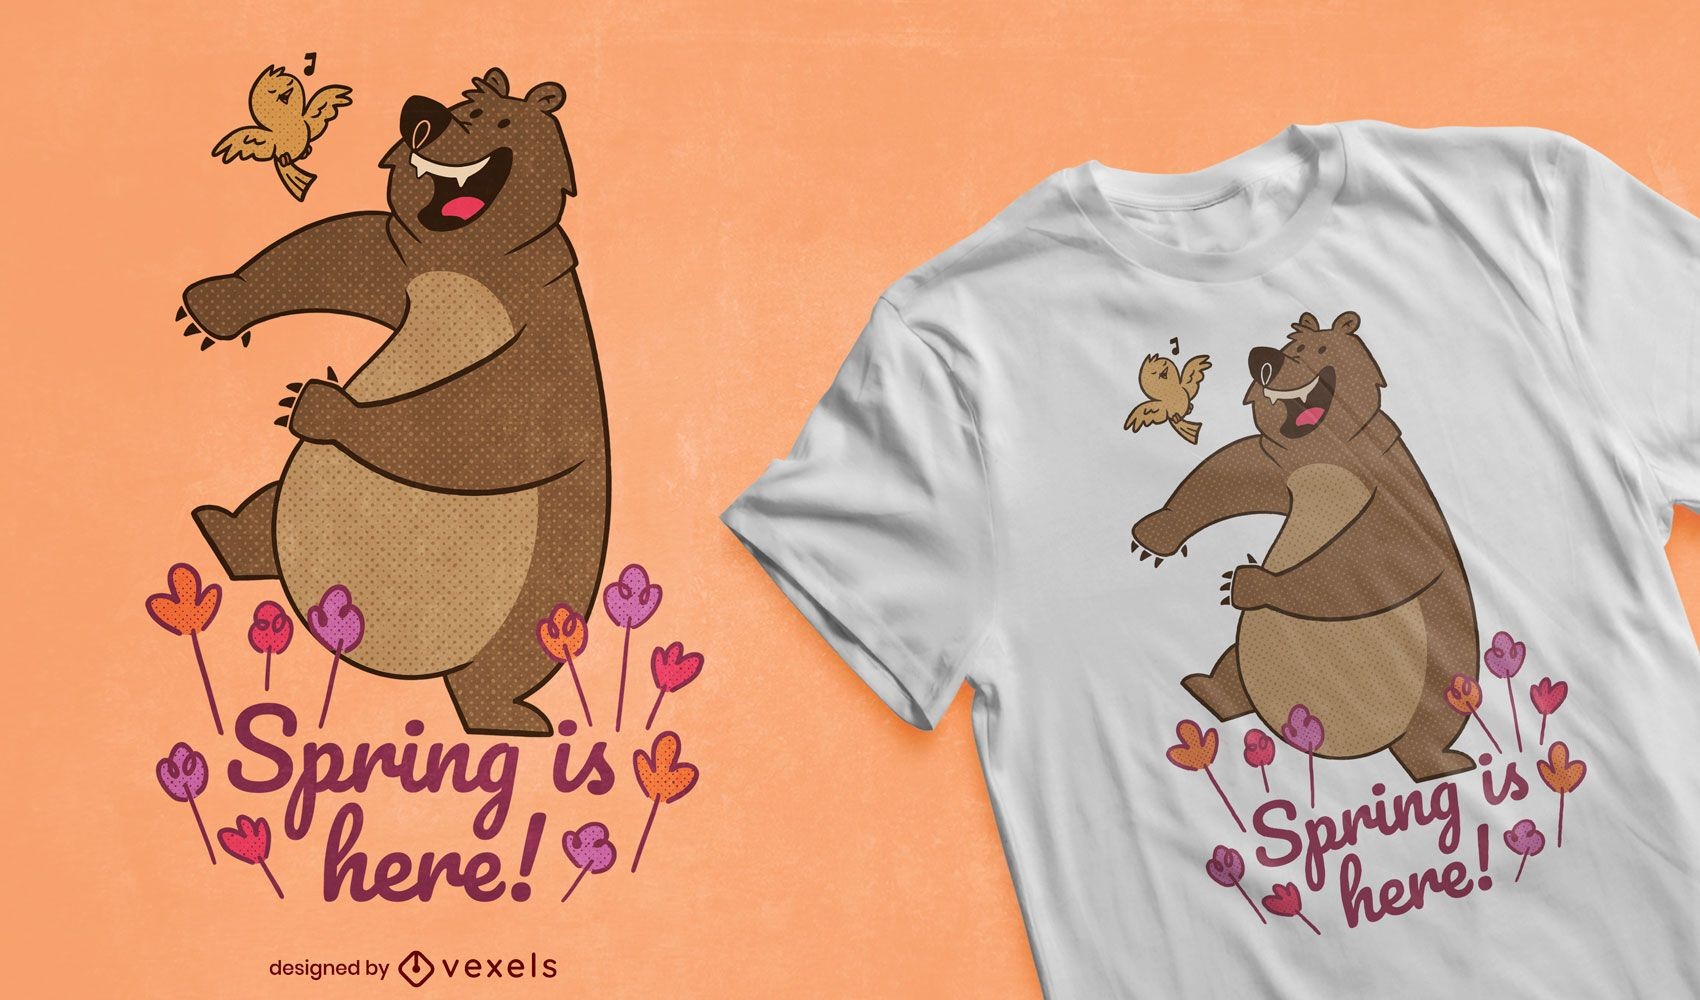 Spring is here t-shirt design